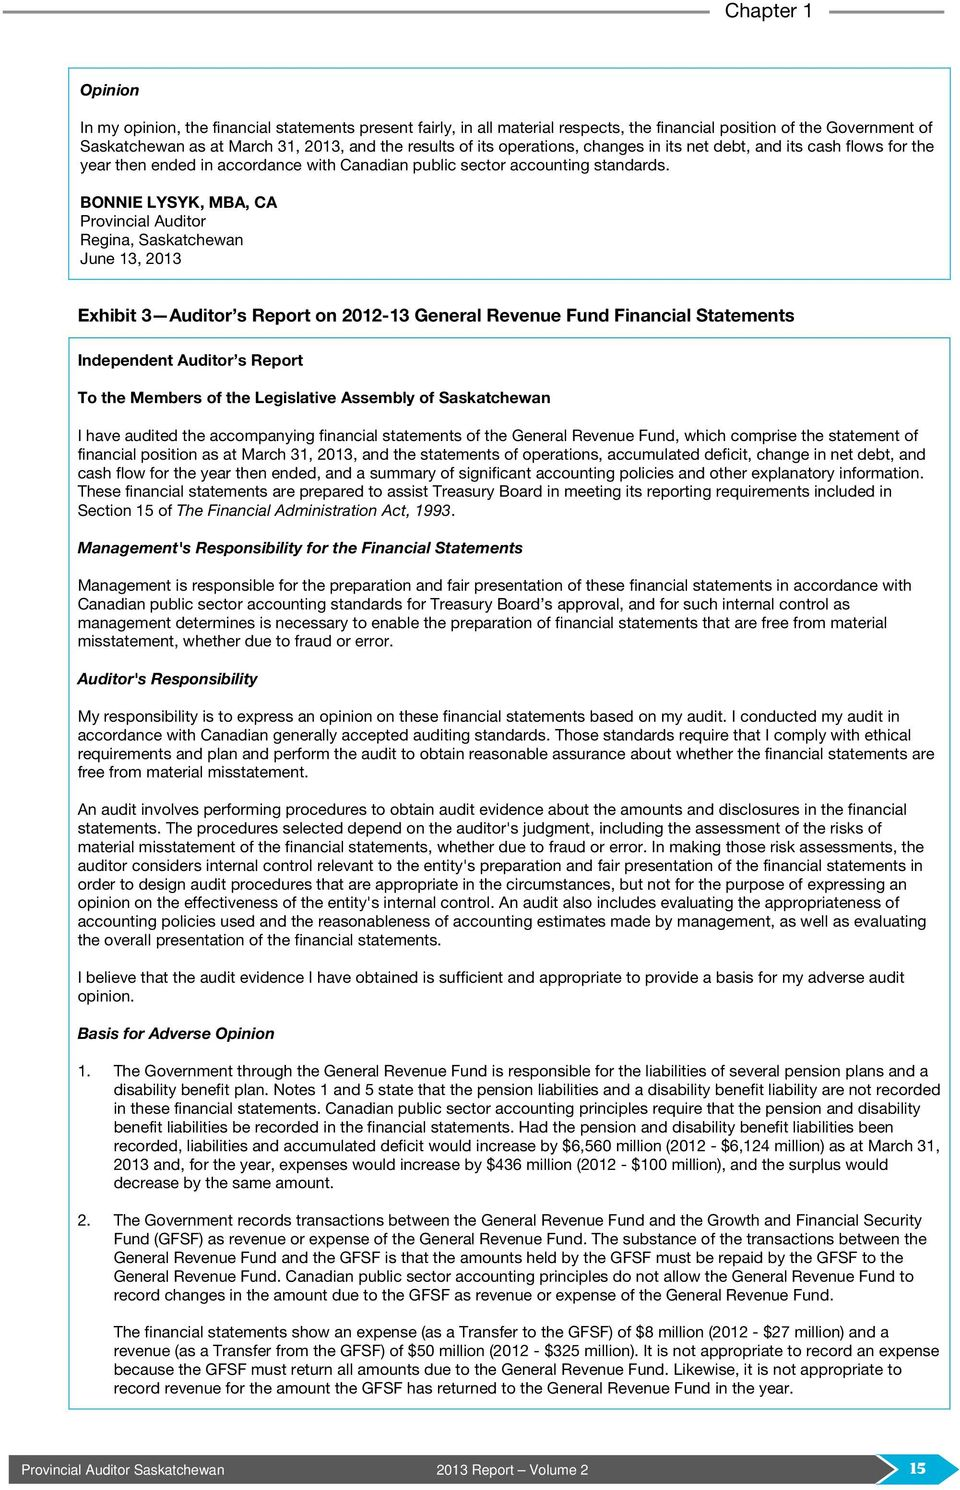 BONNIE LYSYK, MBA, CA Provincial Auditor Regina, Saskatchewan June 13, 2013 Exhibit 3 Auditor s Report on 2012-13 General Revenue Fund Financial Statements Independent Auditor s Report To the Members